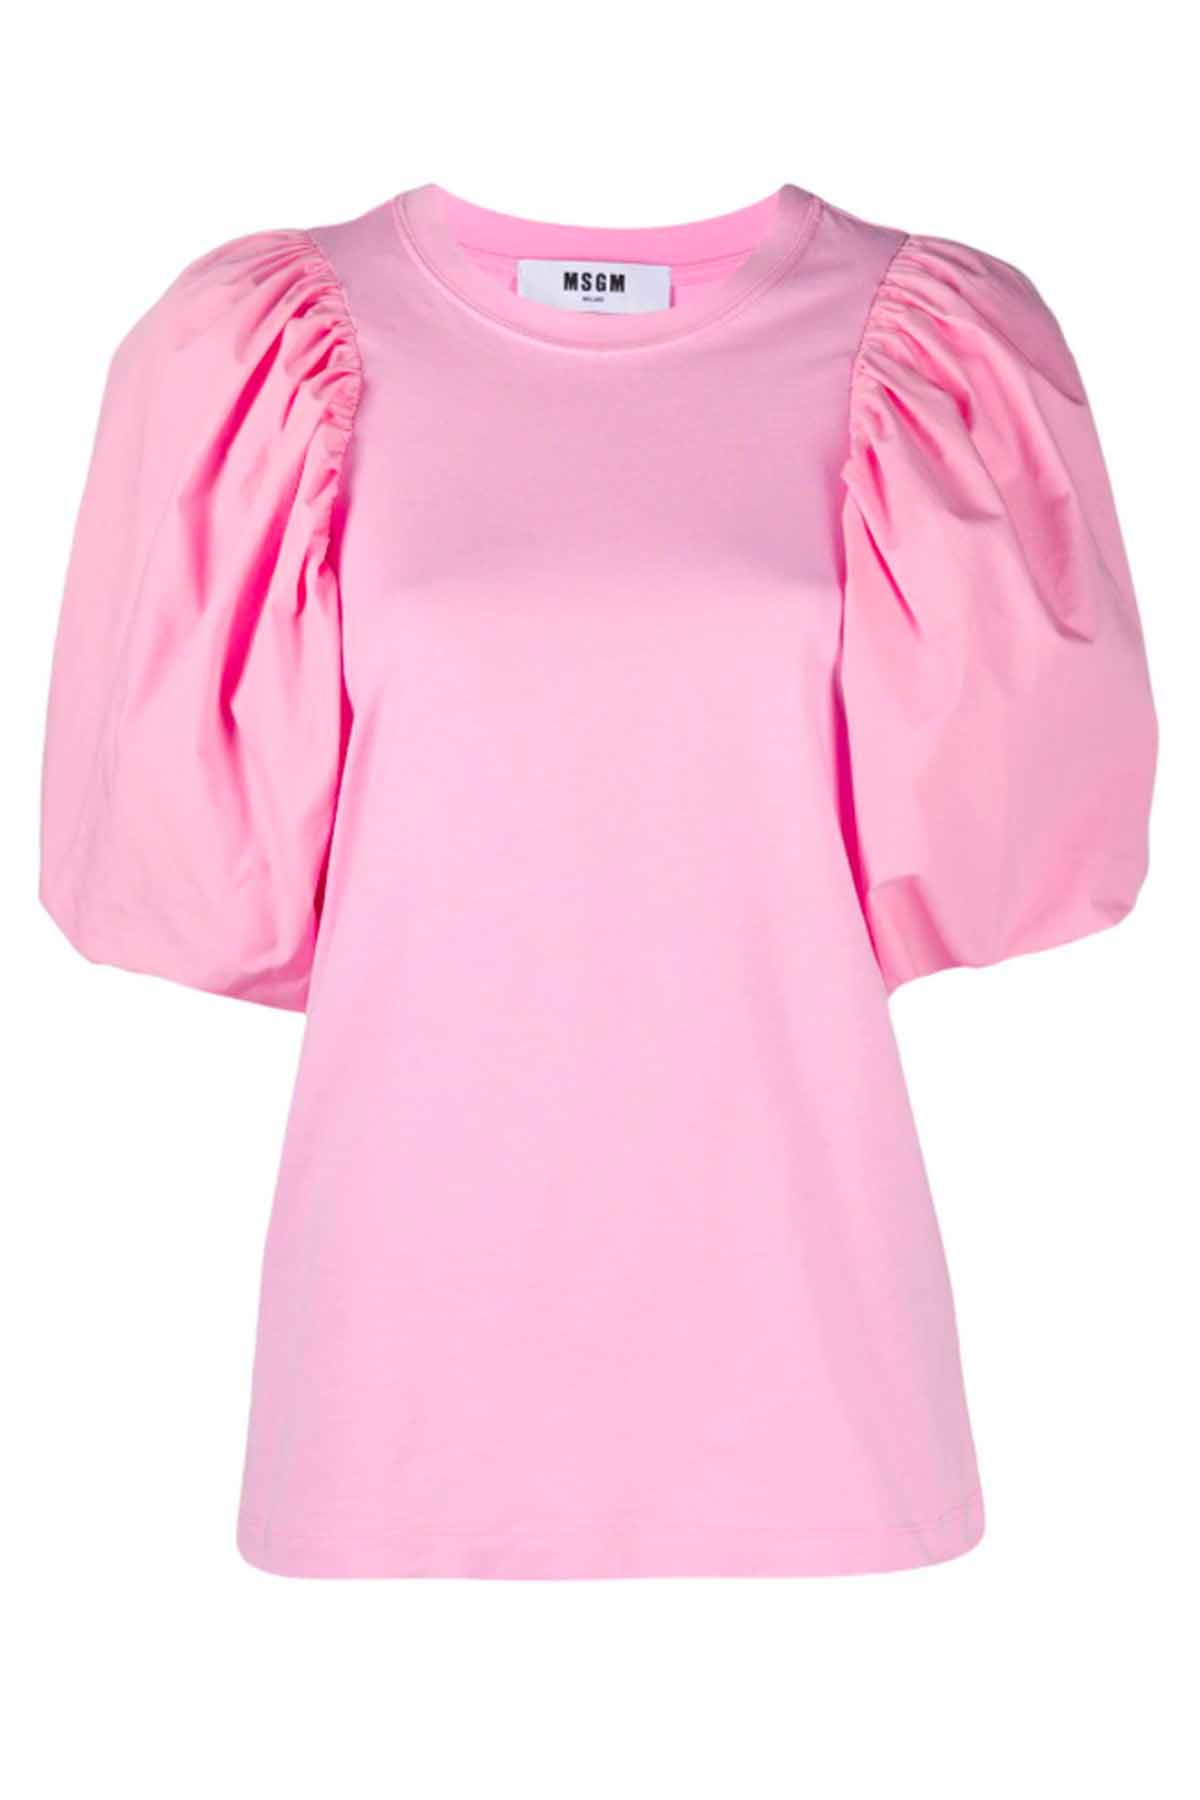 Msgm T-SHIRTS AND POLOS PINK